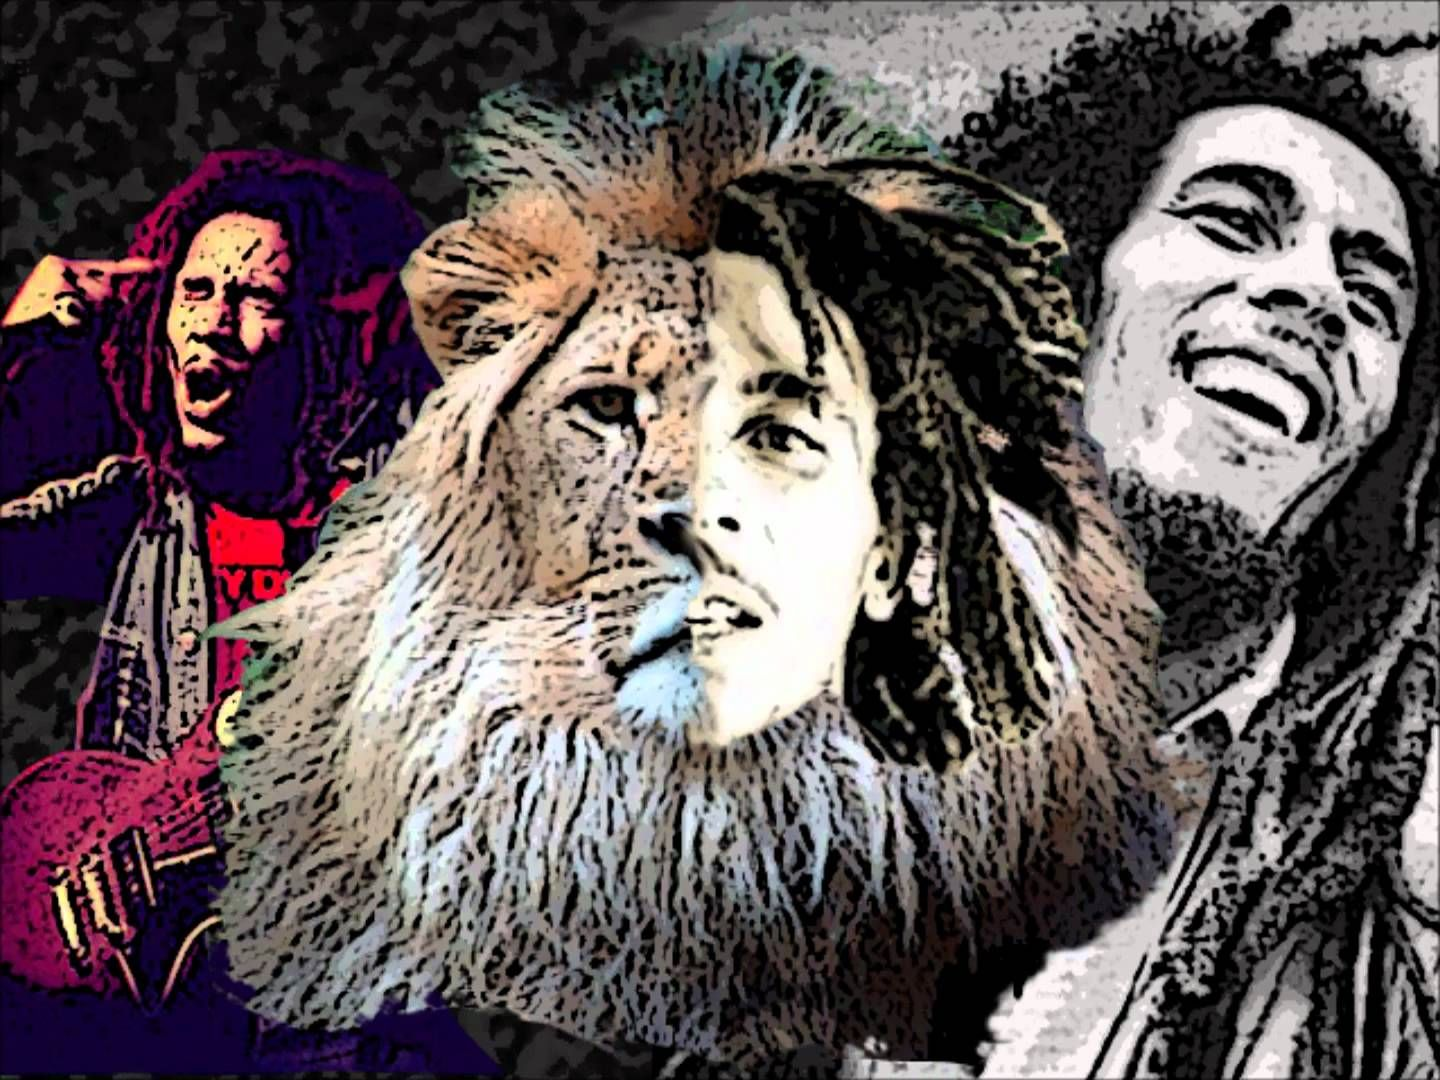 **Bob Marley** ▻▻More fantastic collages, pictures, music and